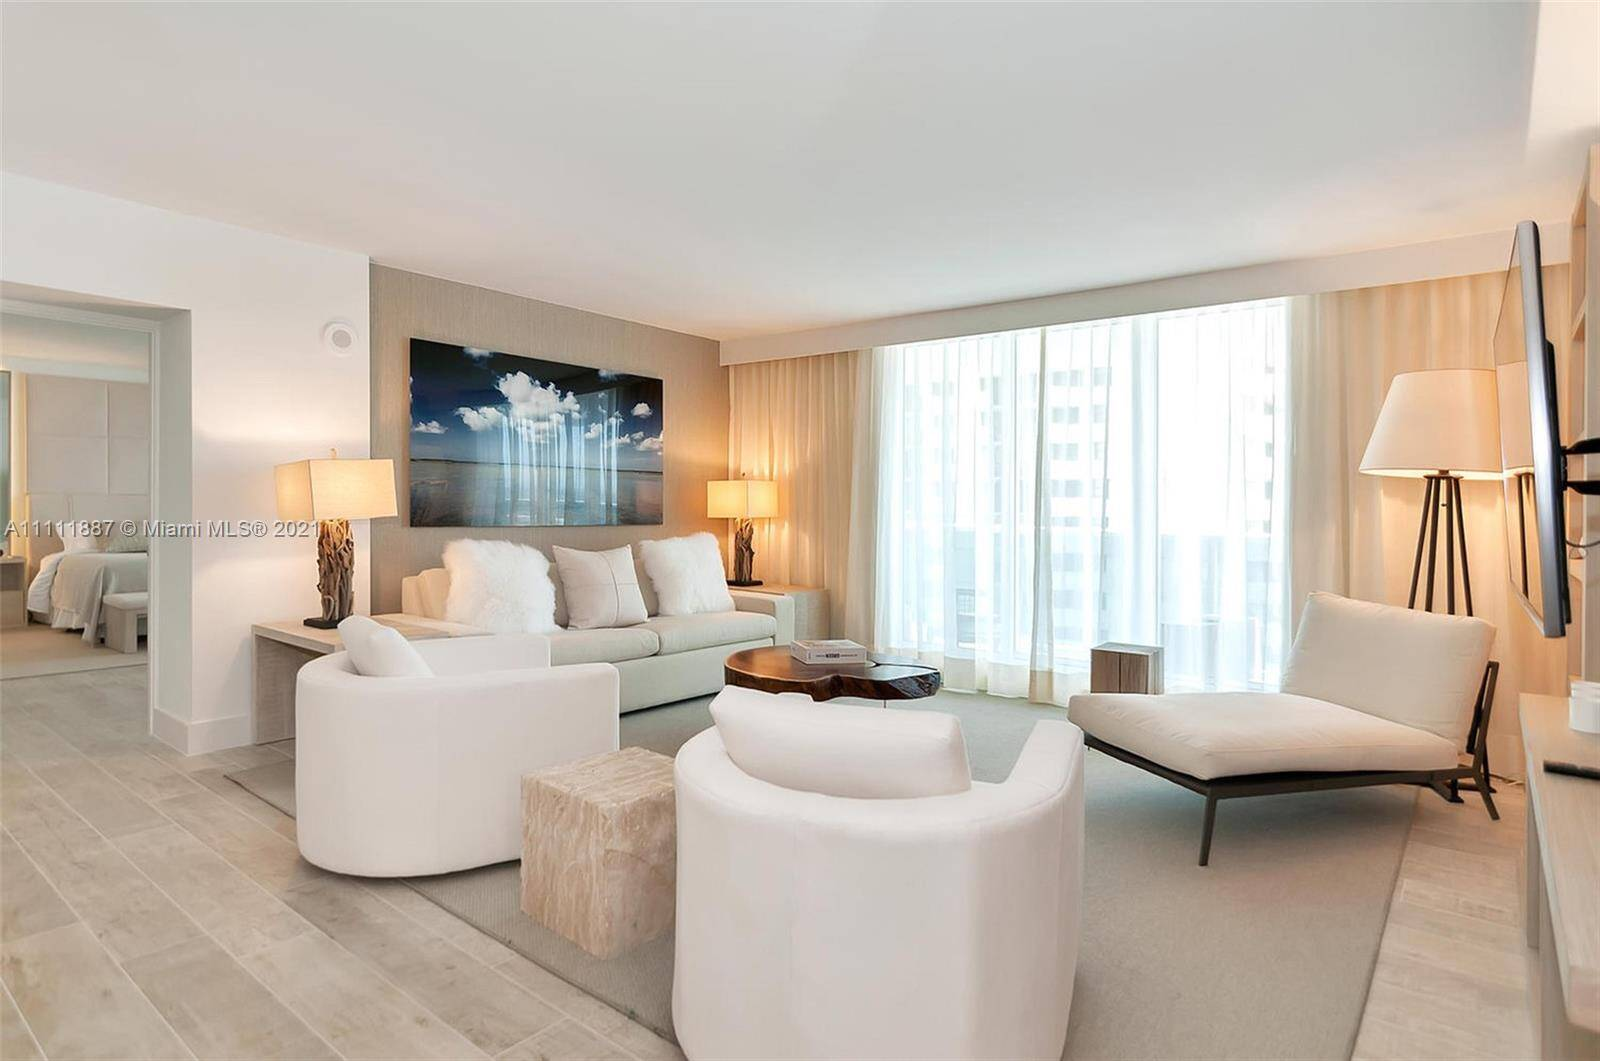 1 Hotel & Homes For Sale| Unit #919